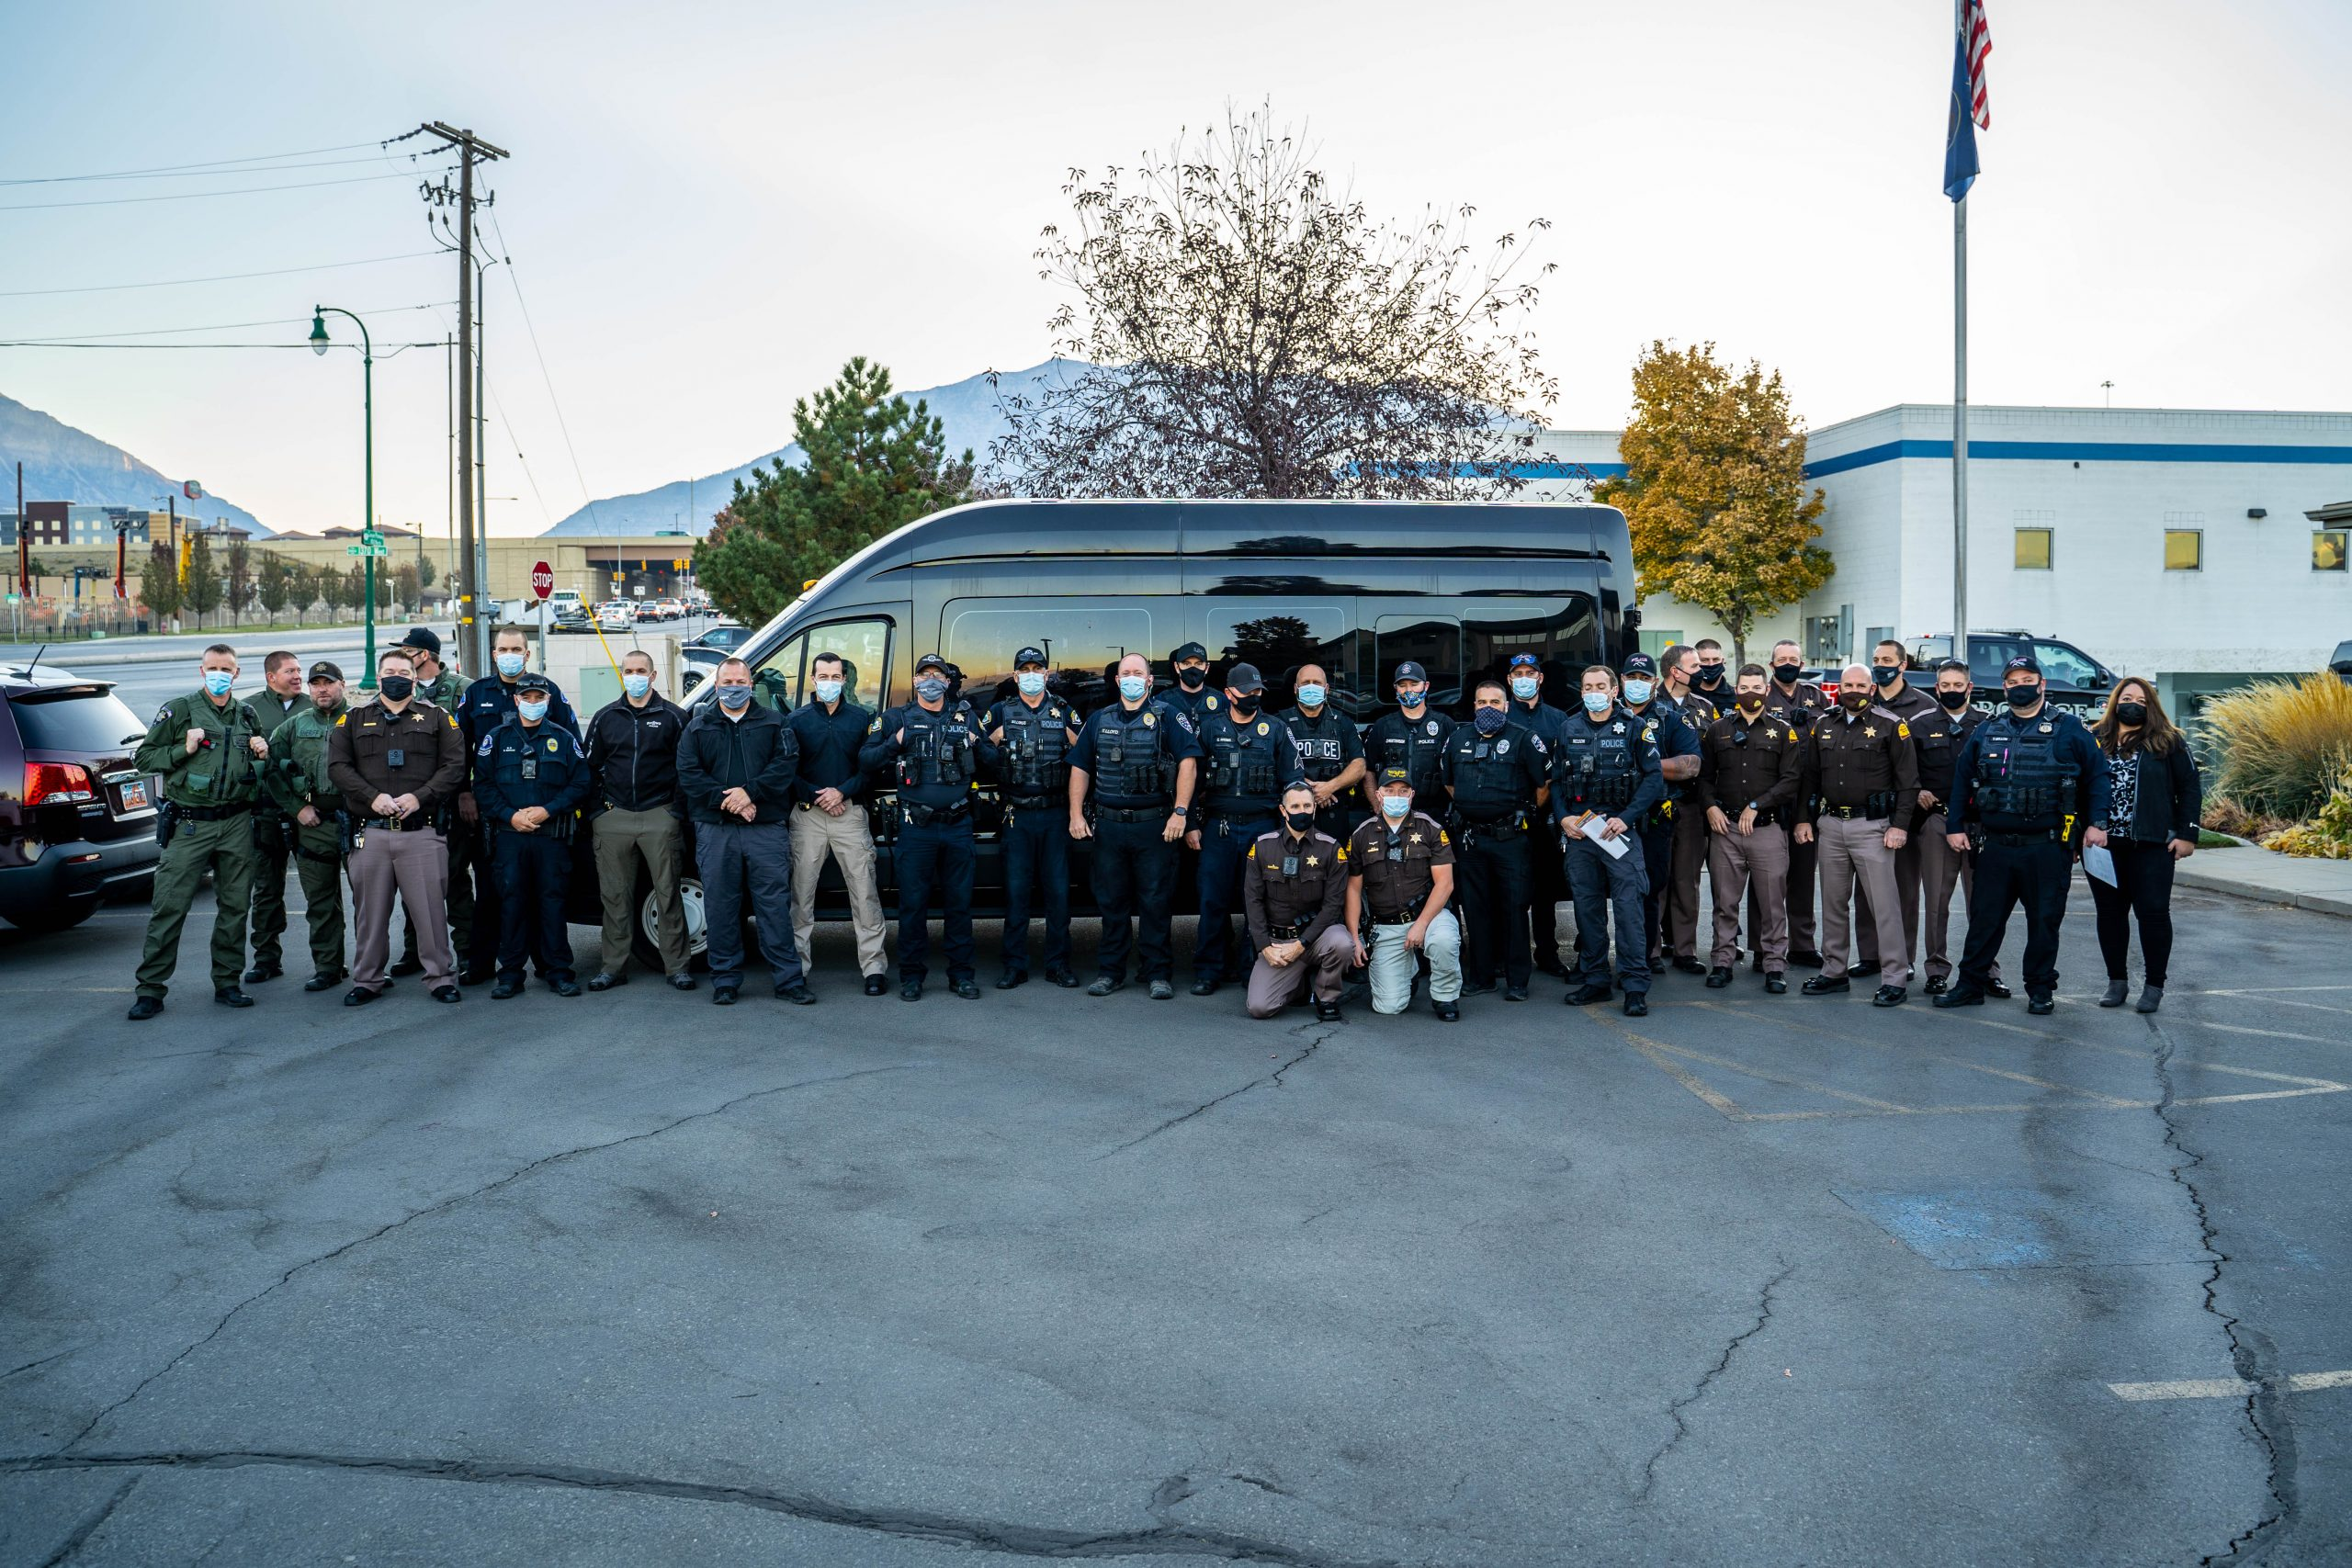 Image shows 32 officers from 7 different police departments standing in front of an unmarked van that will be used for the distracted driving operation.